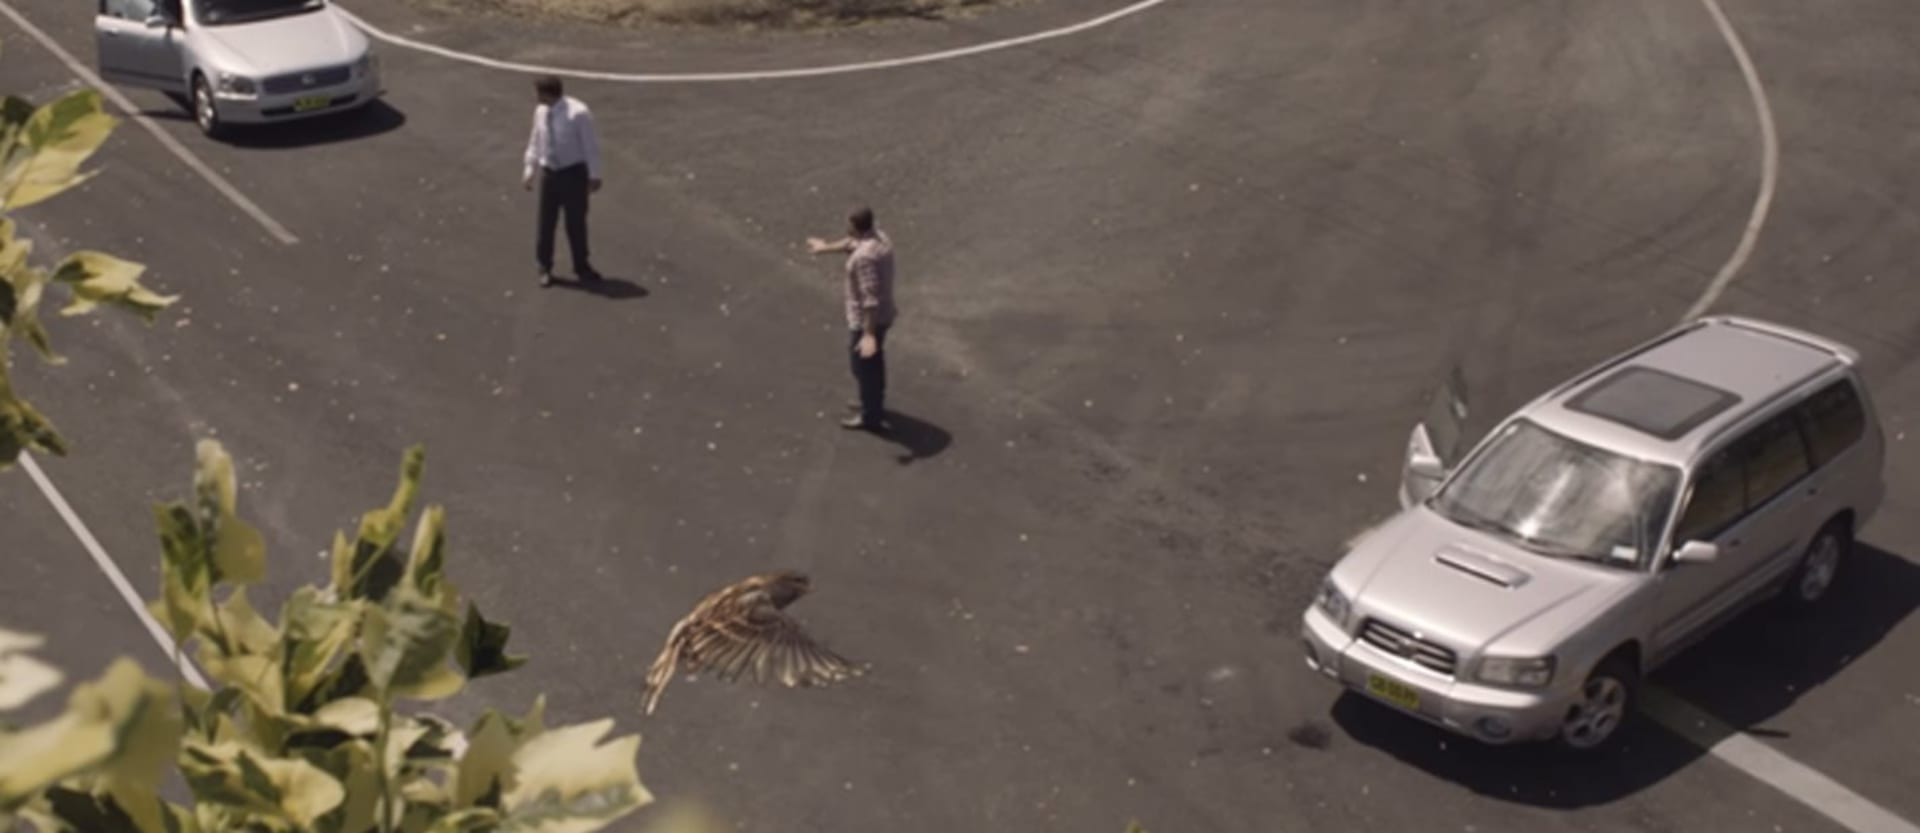 The latest NSW road safety ad is a farce